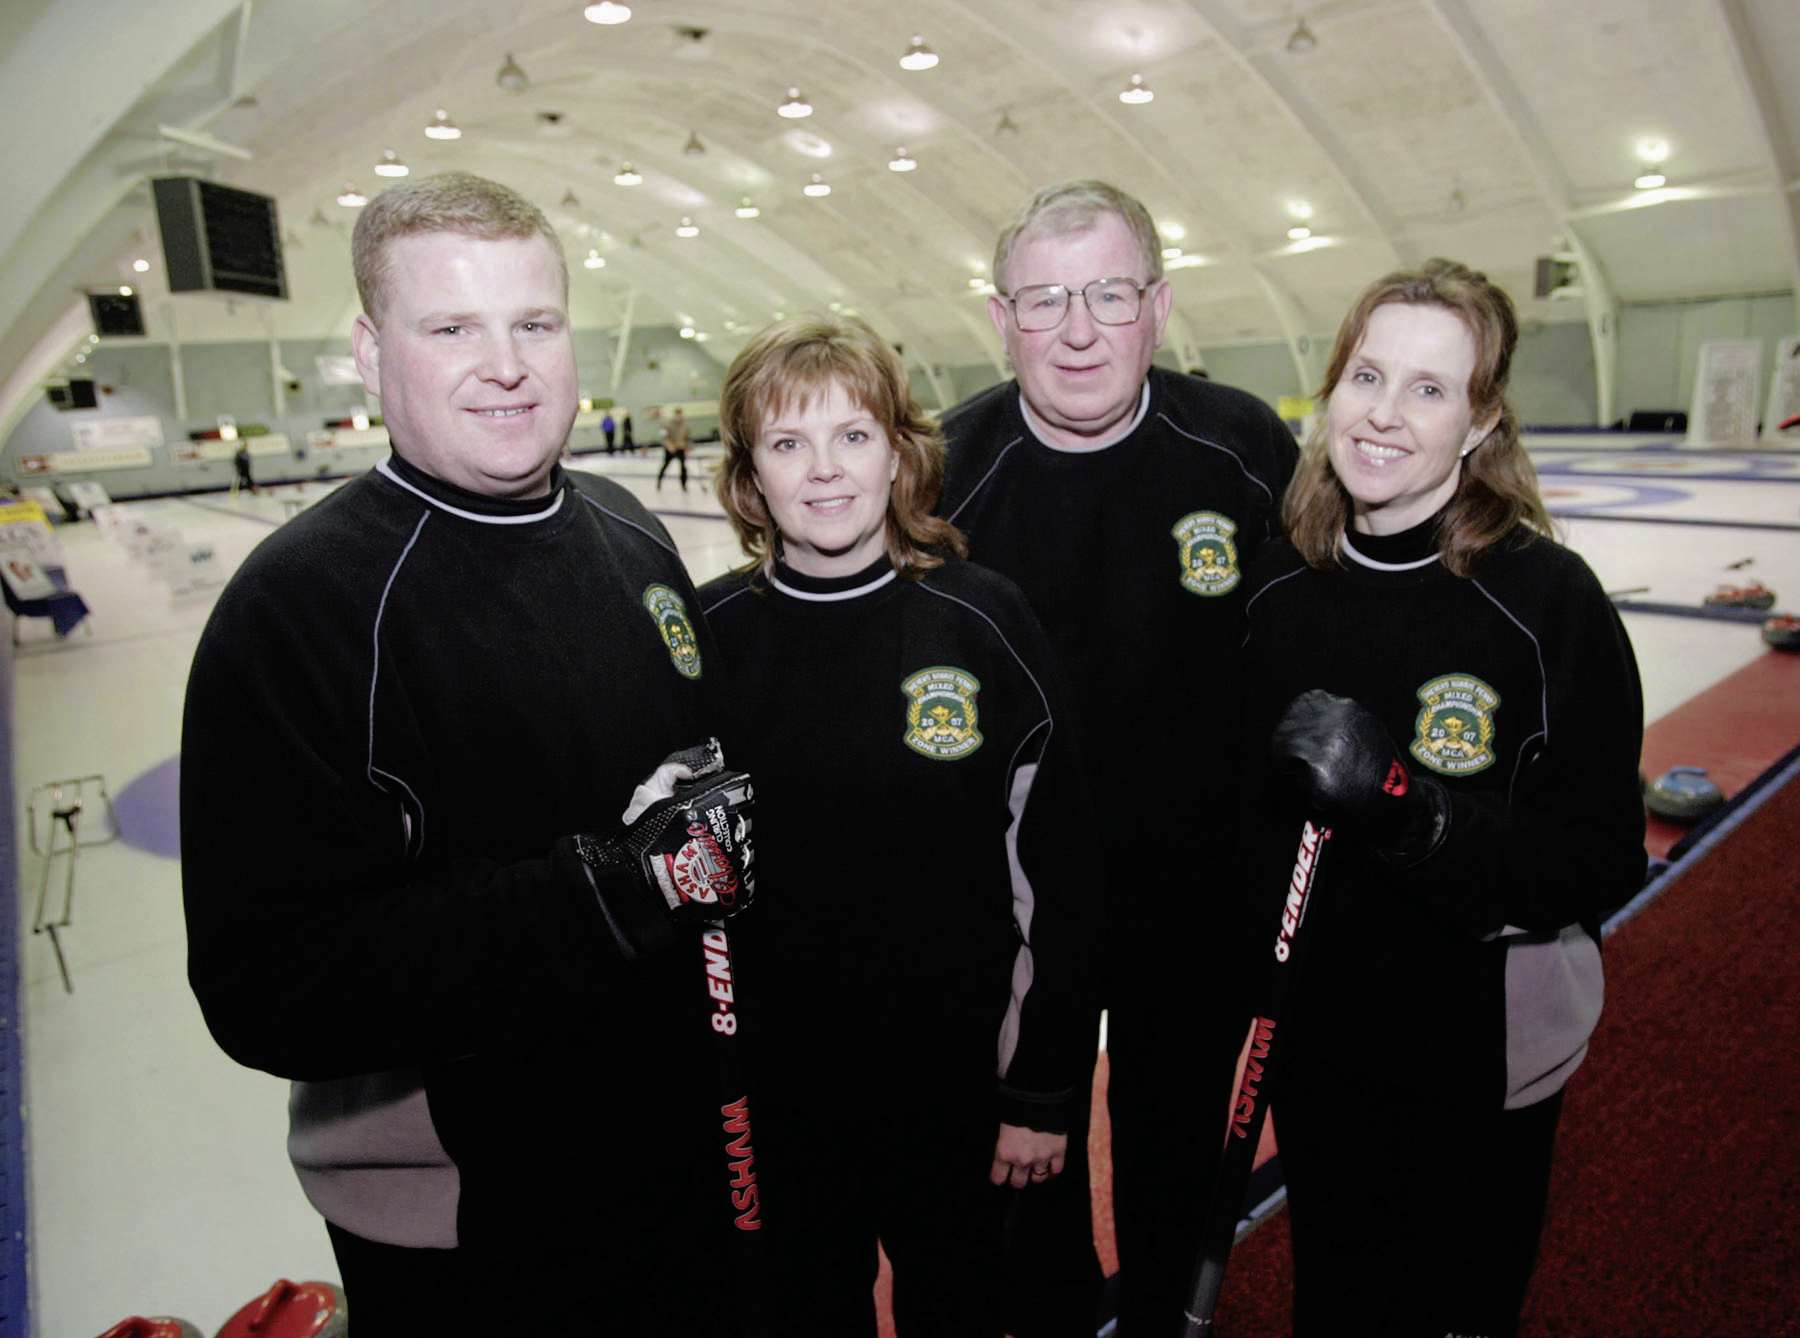 The Kirknesses were perhaps the most successful curling family from St. James-Assiniboia, and often curled in mixed events together. Pictured here in 2007 are (from left) James Kirkness, sister Barb Spencer, father Jim and sister Darcy Robertson.